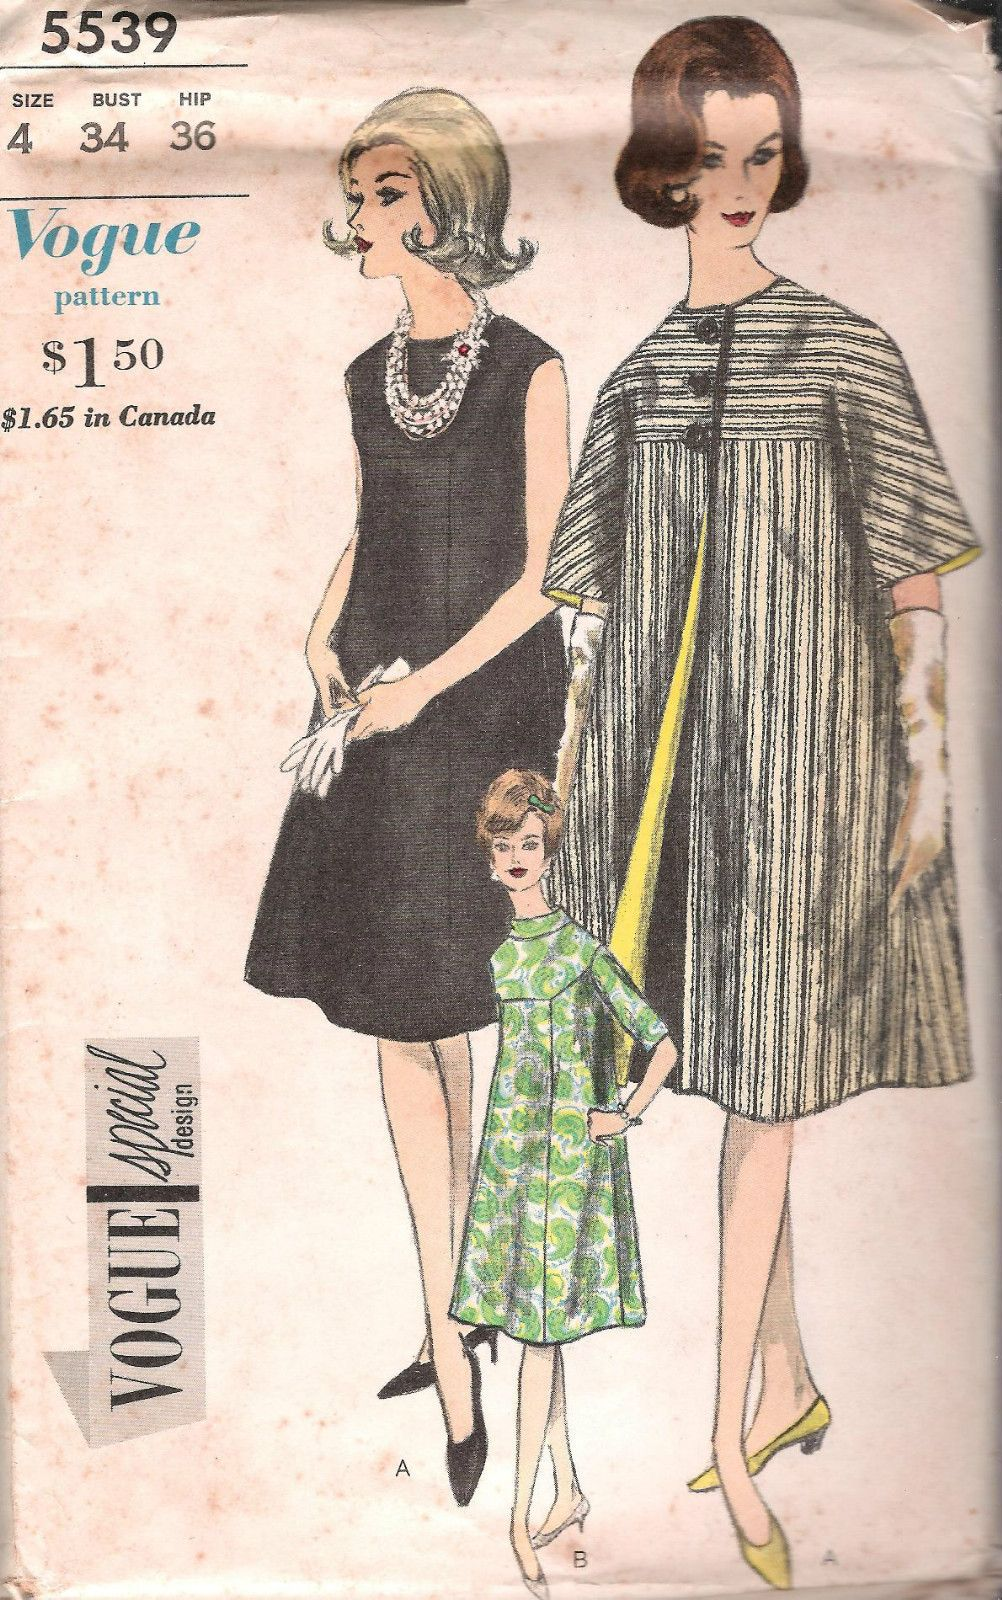 Vintage maternity coat dress 60s sewing pattern 5539 vogue bust 34 vintage maternity coat dress 60s sewing pattern 5539 vogue bust 34 hip 36 uncut ebay ombrellifo Image collections